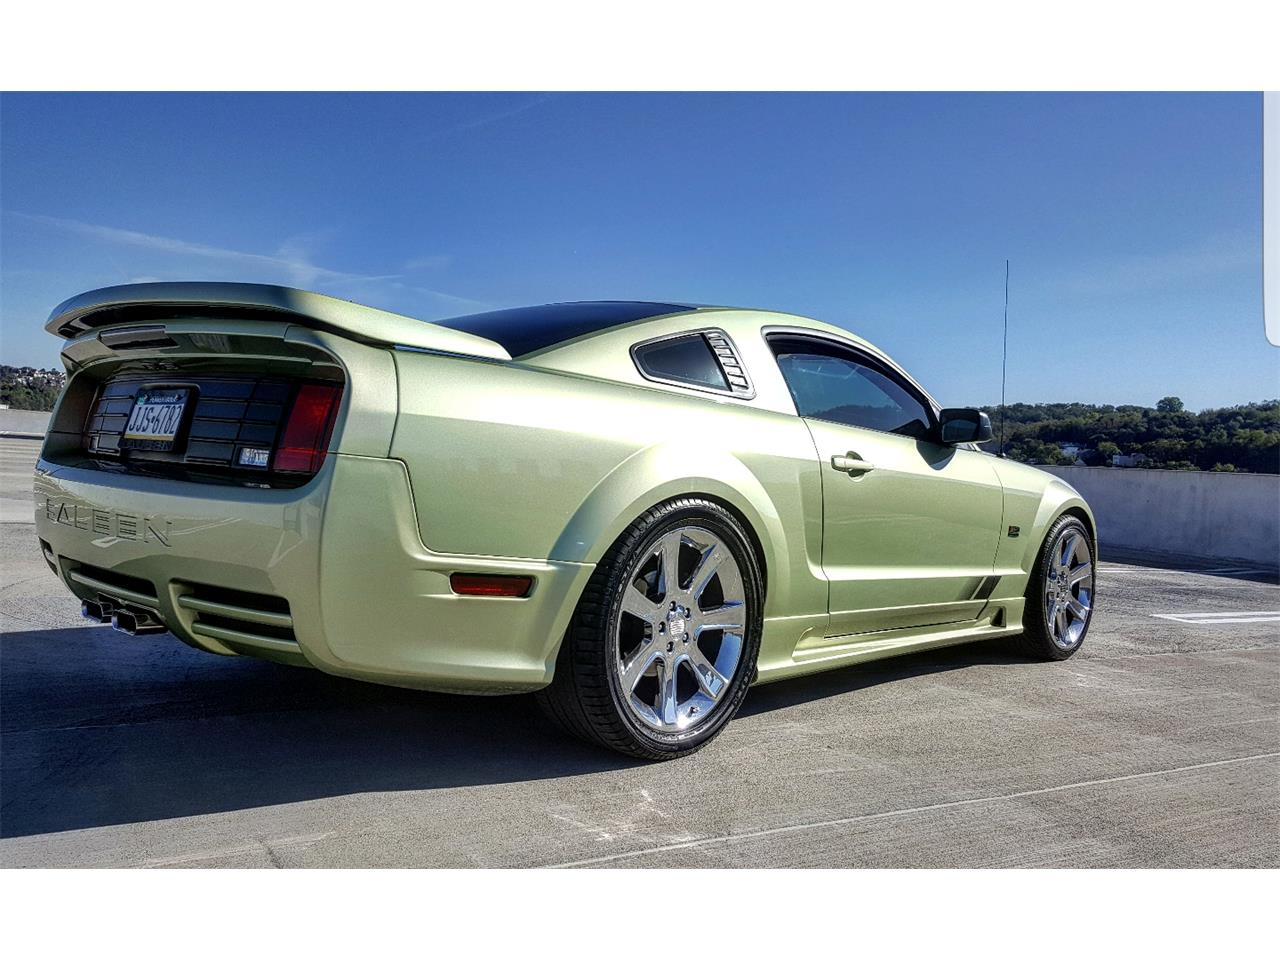 Large picture of 05 mustang saleen d2ag